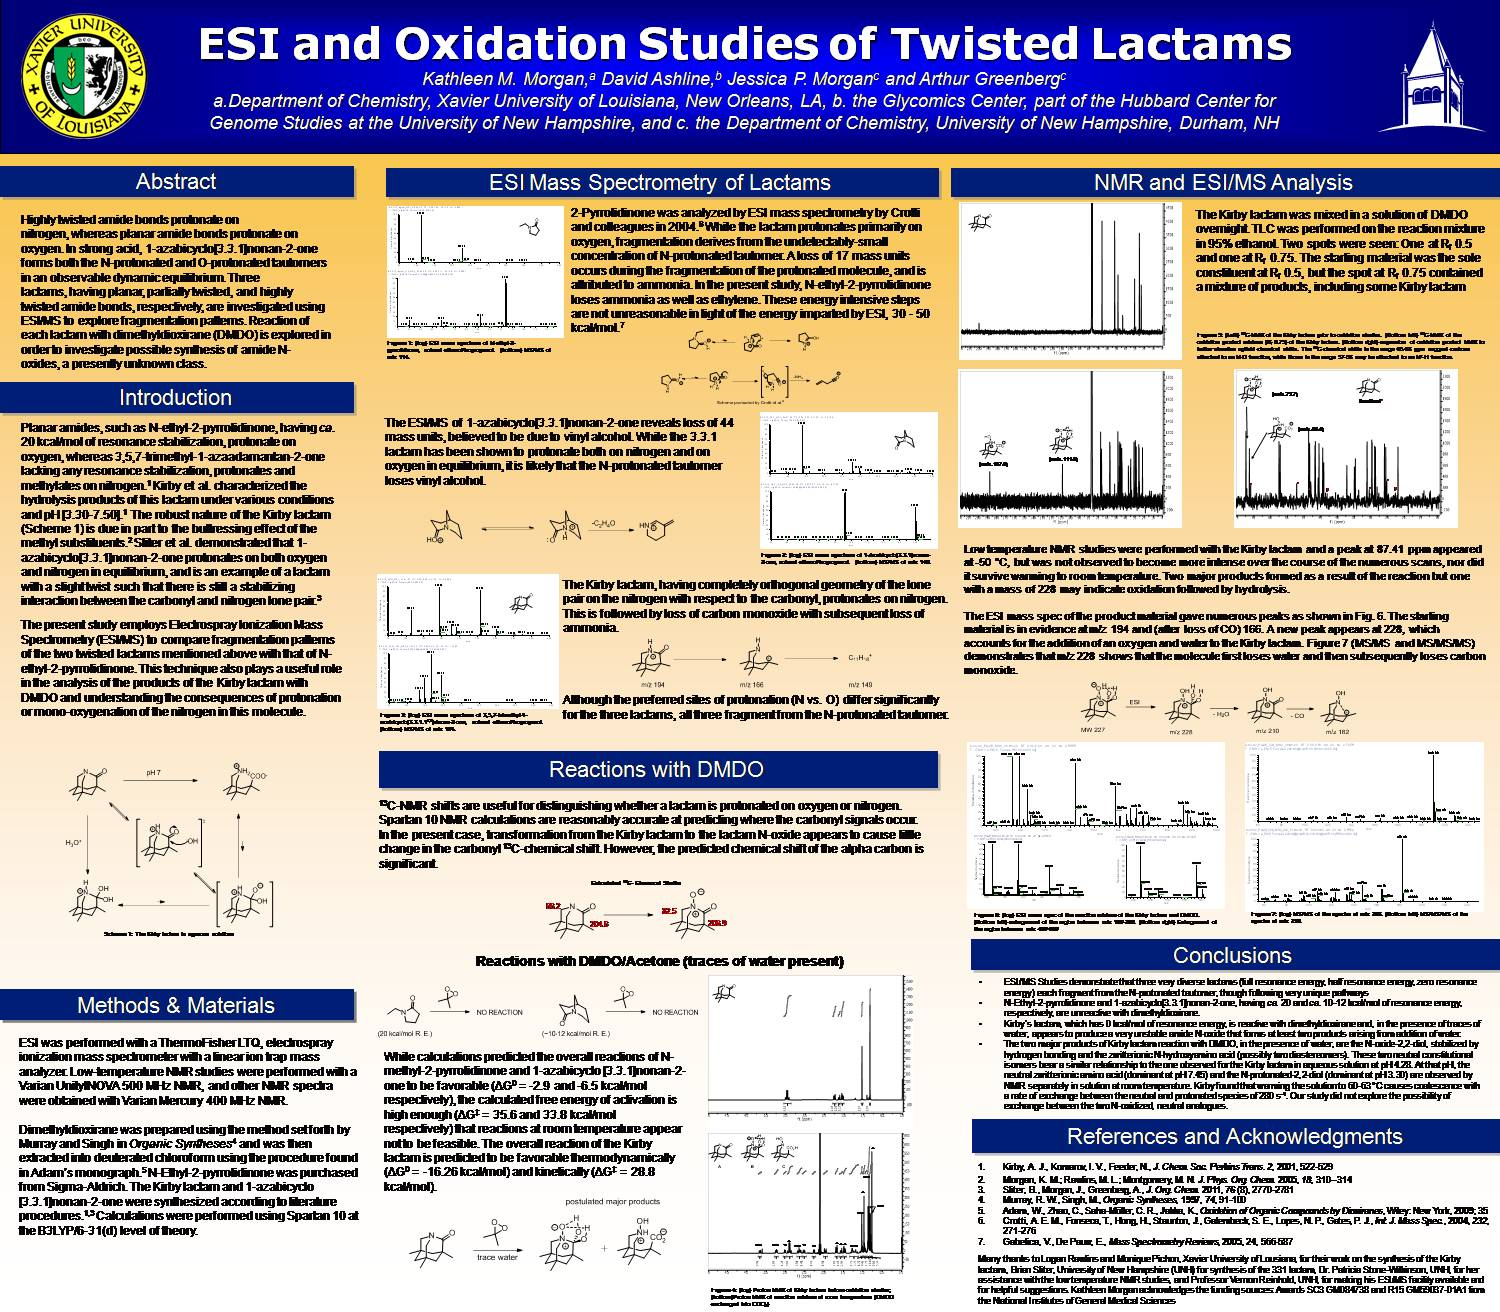 Esi And Oxidation Studies Of Twisted Lactams by jessmorgan1178